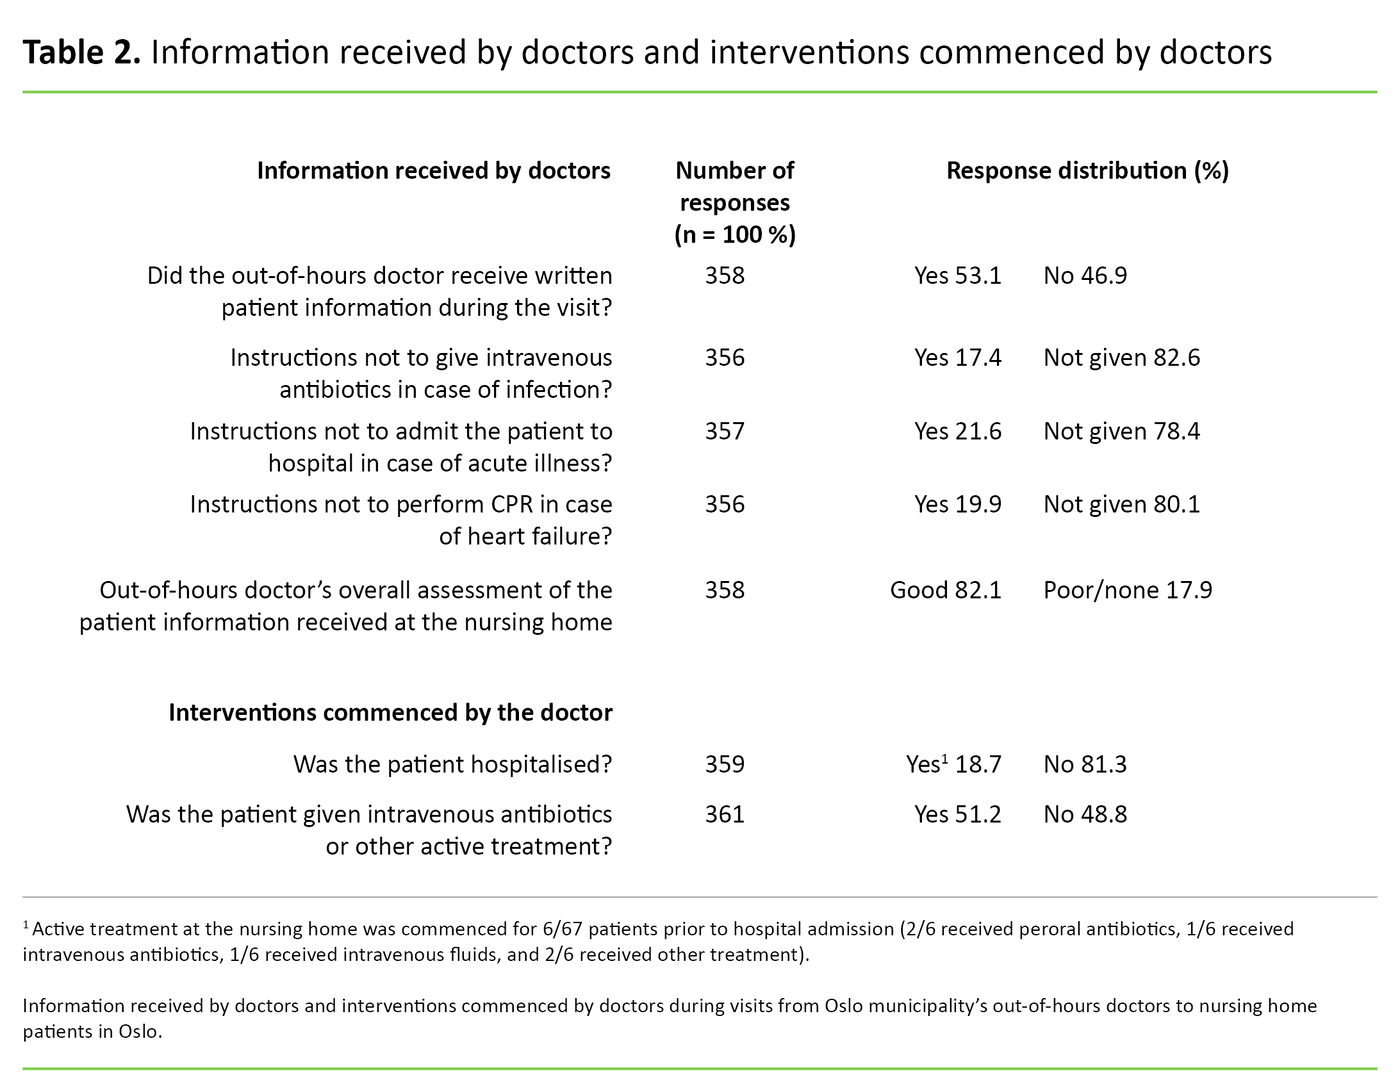 Table 2. Information received by doctors and interventions commenced by doctors